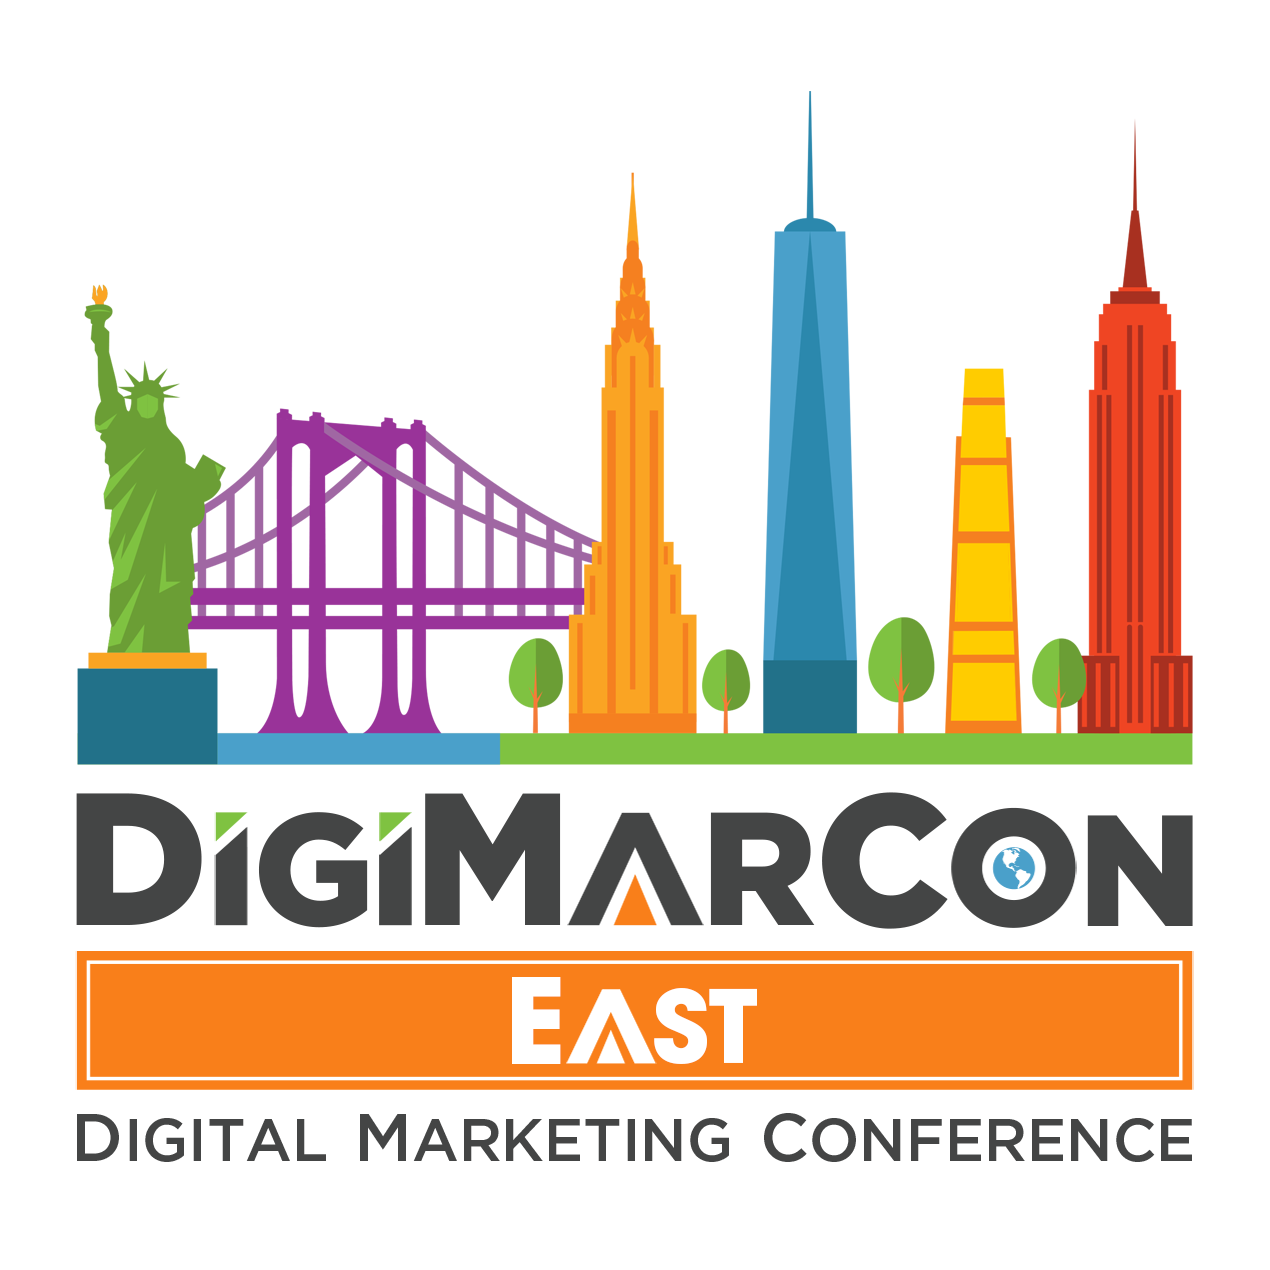 DigiMarCon East 2022 – Digital Marketing, Media and Advertising Conference & Exhibition